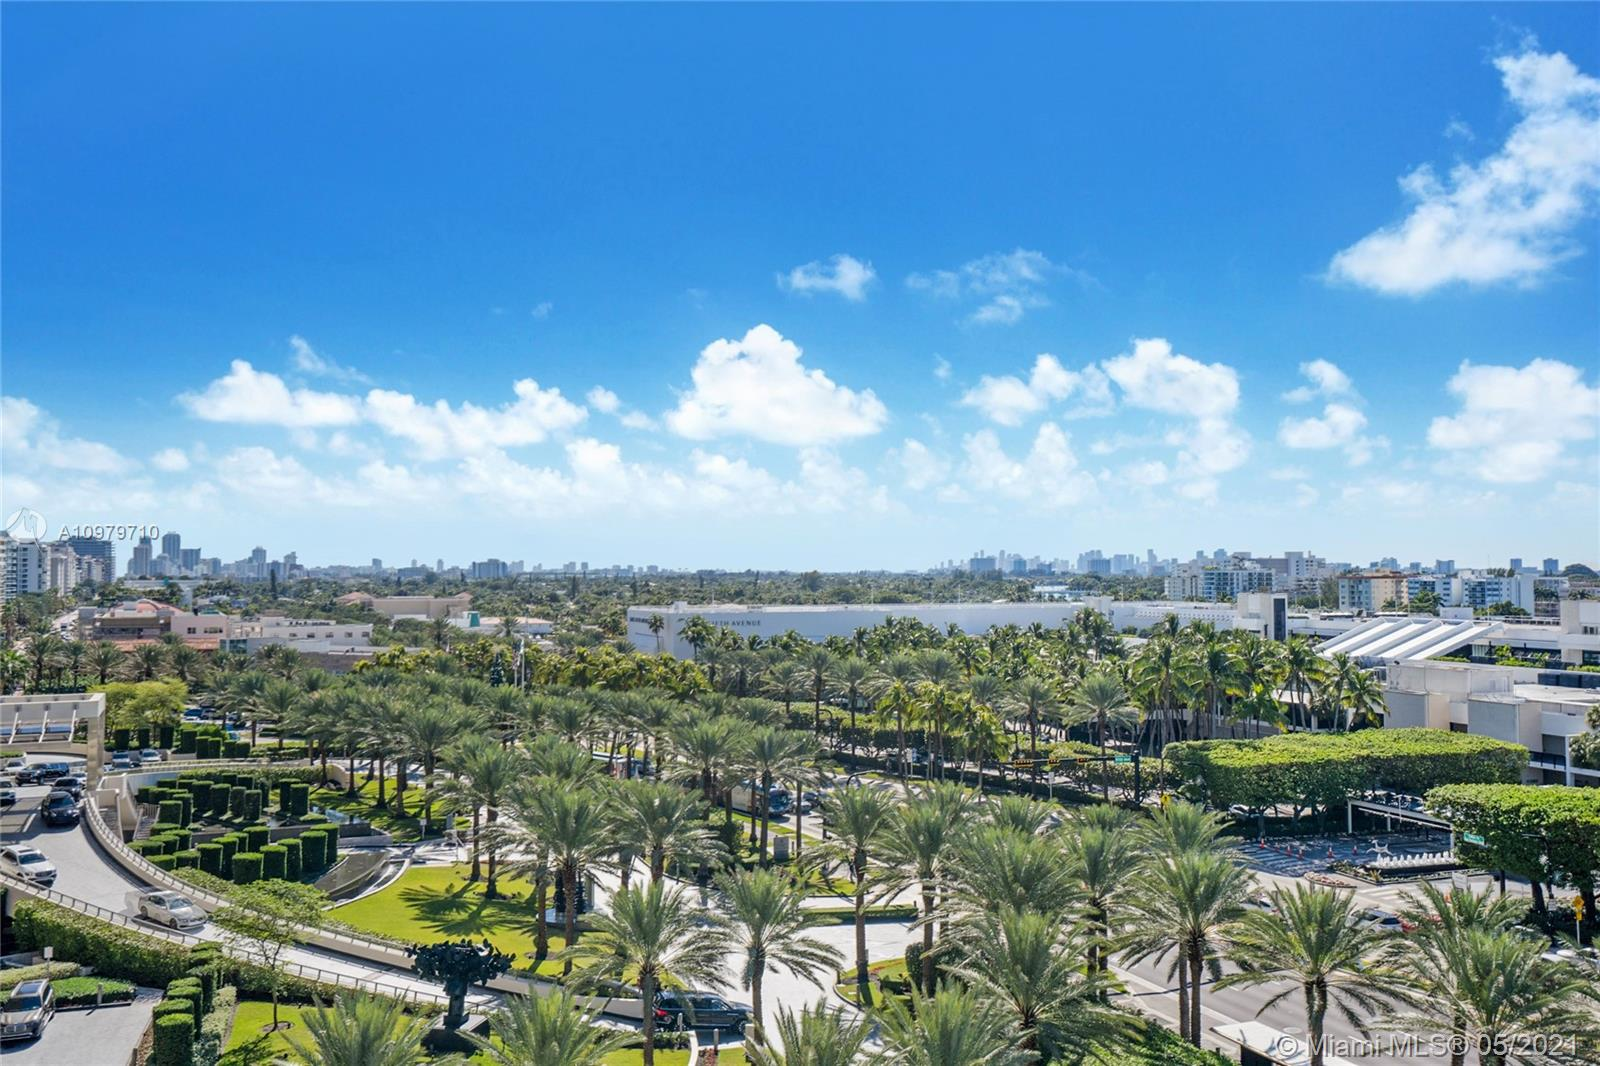 Photo of 9801 Collins Ave #10R, Bal Harbour, Florida, 33154 - City views from the balcony